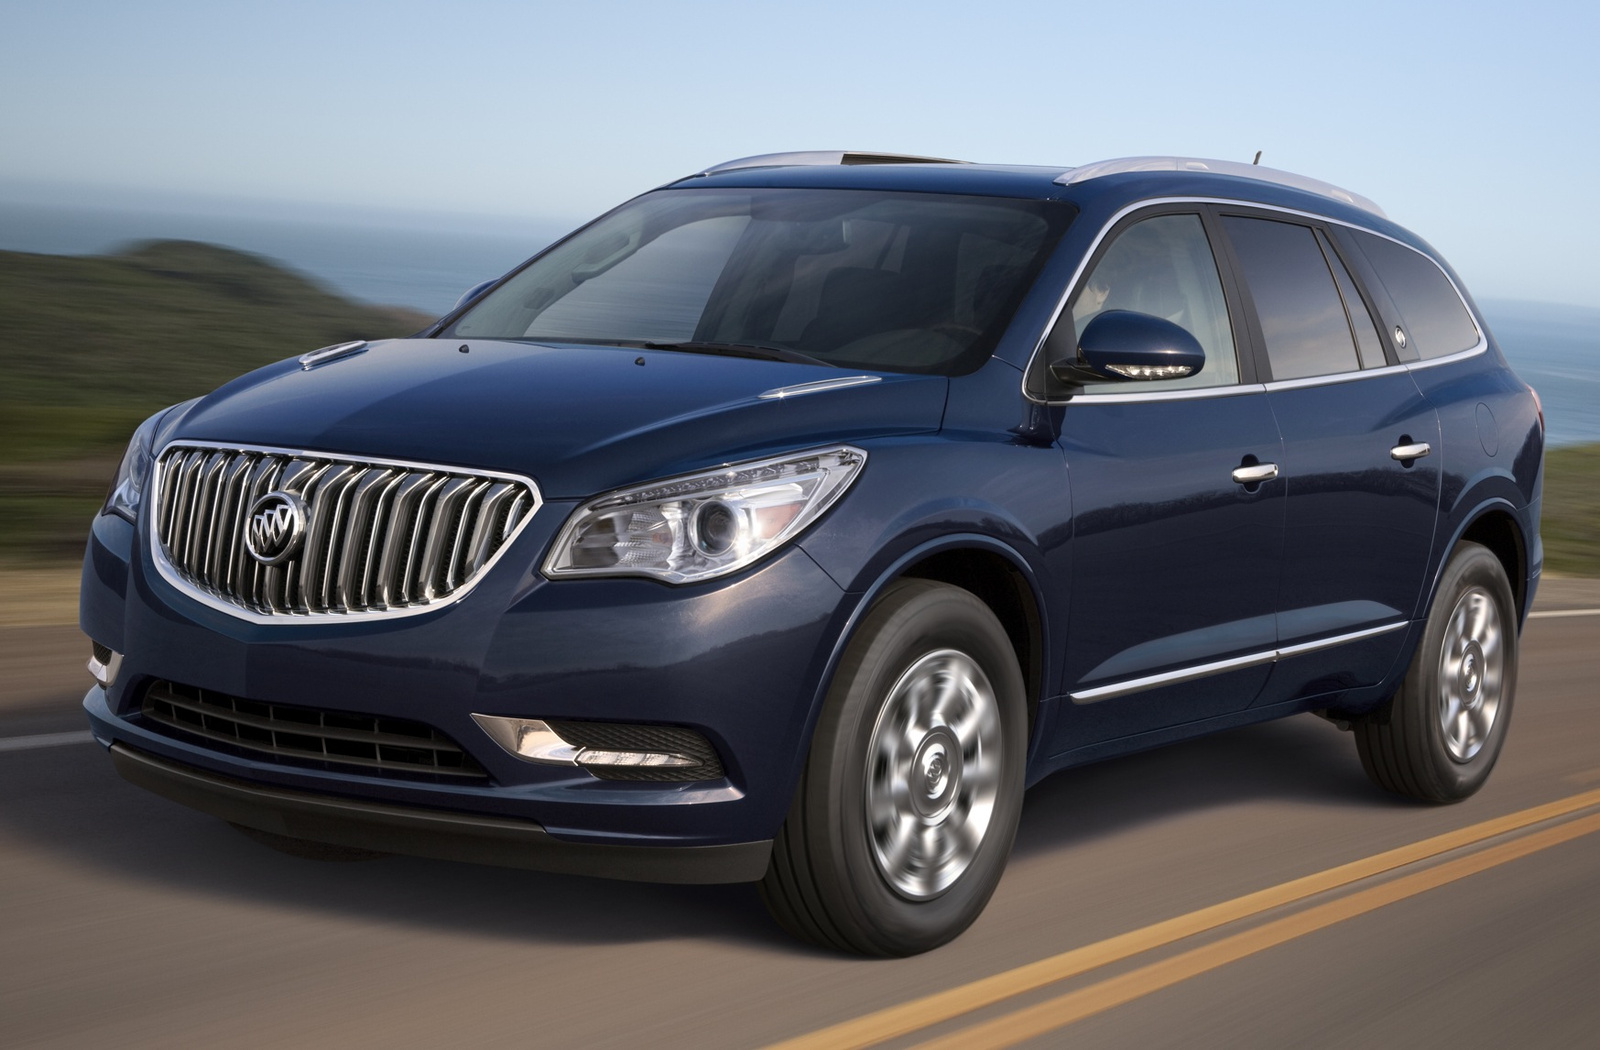 2015 buick enclave - review